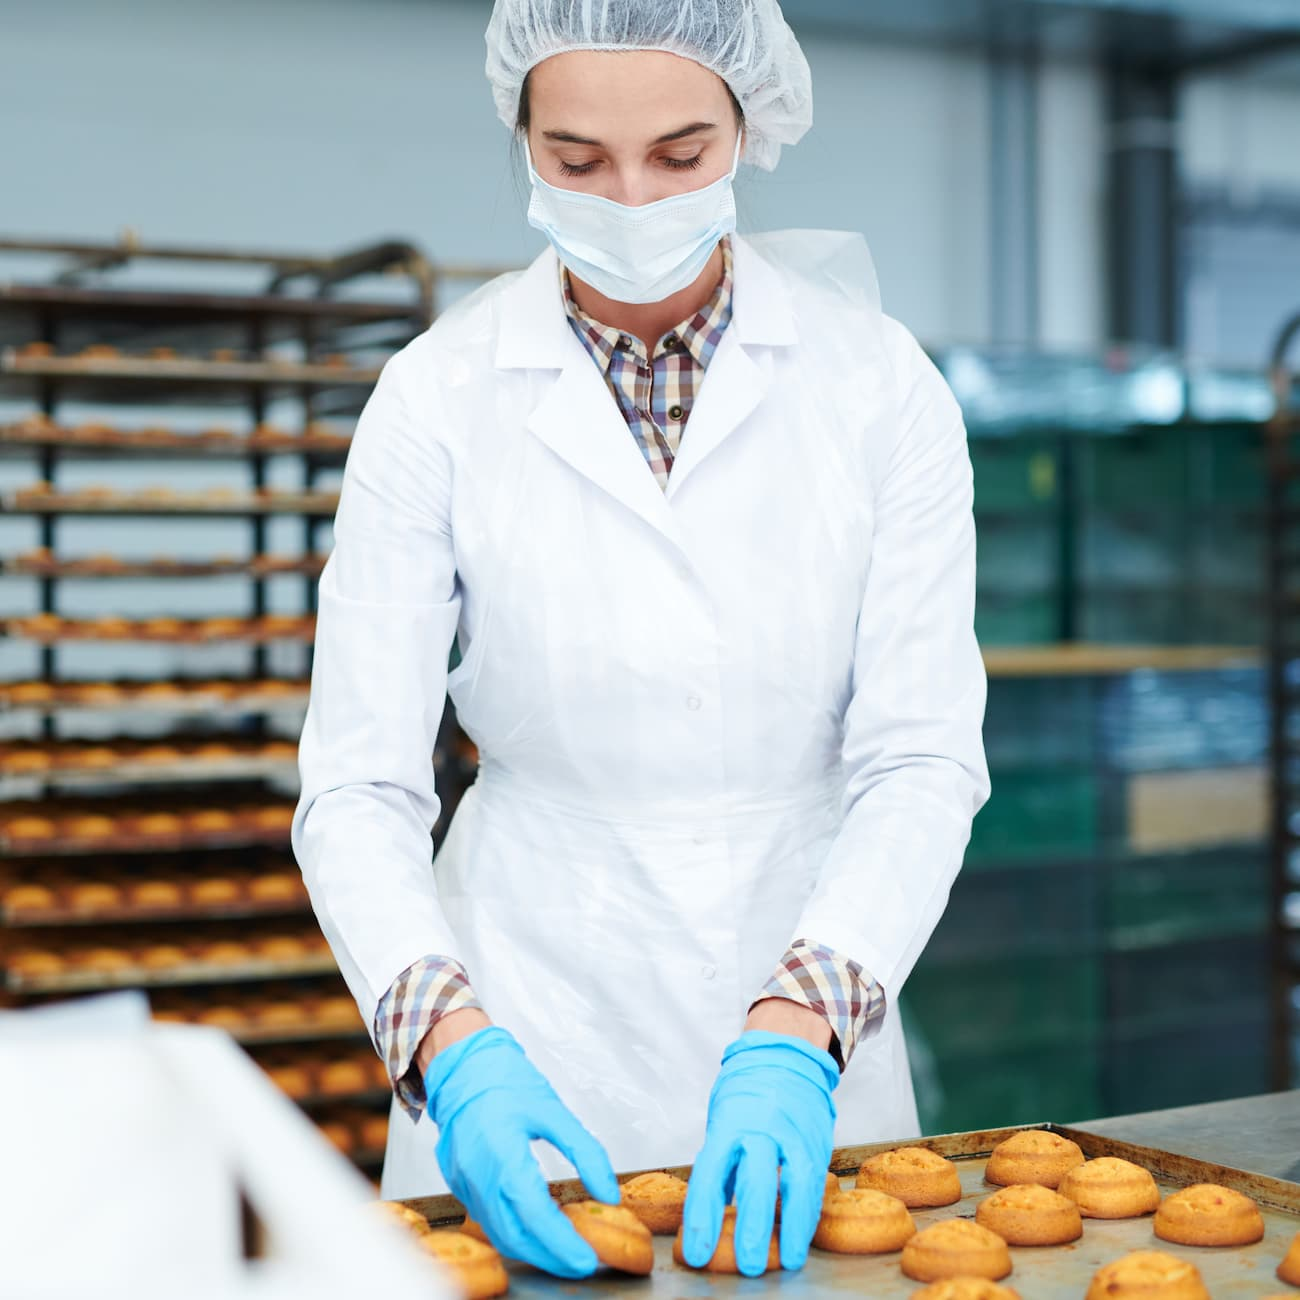 confectioner-collecting-freshly-baked-pastry-from--PUFKGJC